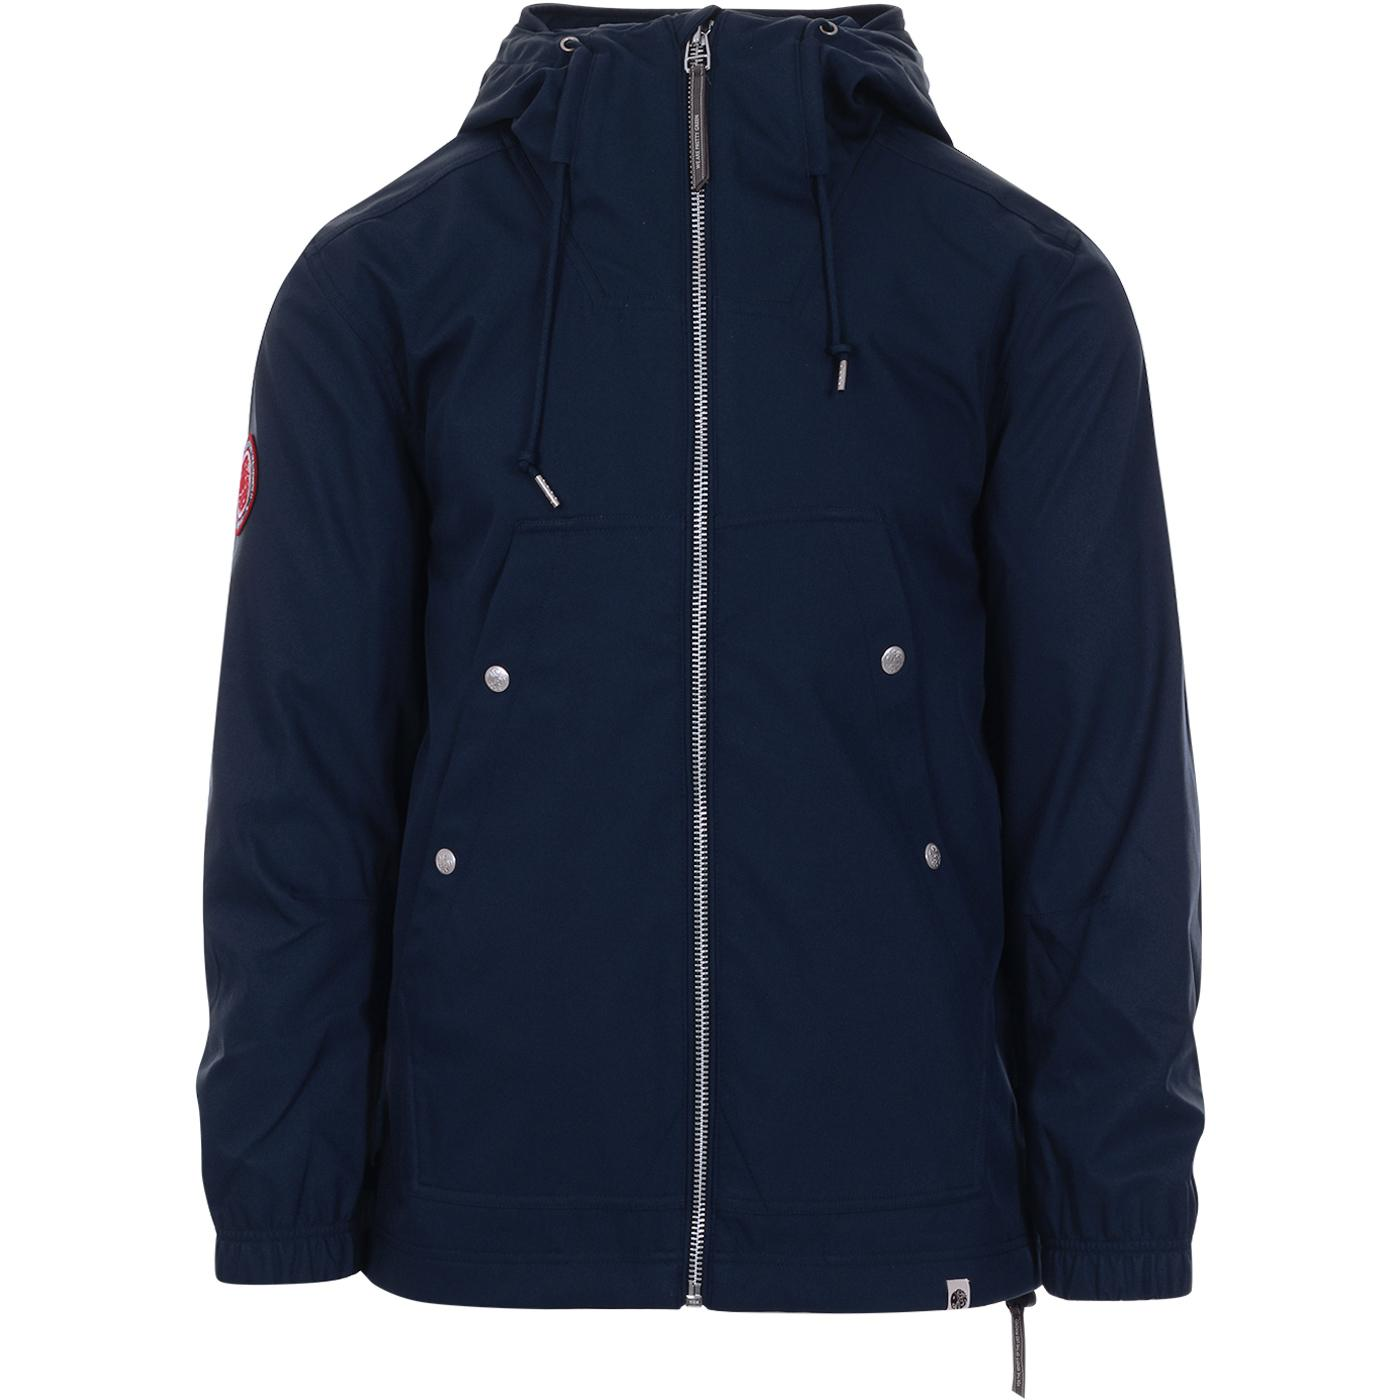 PRETTY GREEN 90s Likeminded Soft Shell Jacket (N)